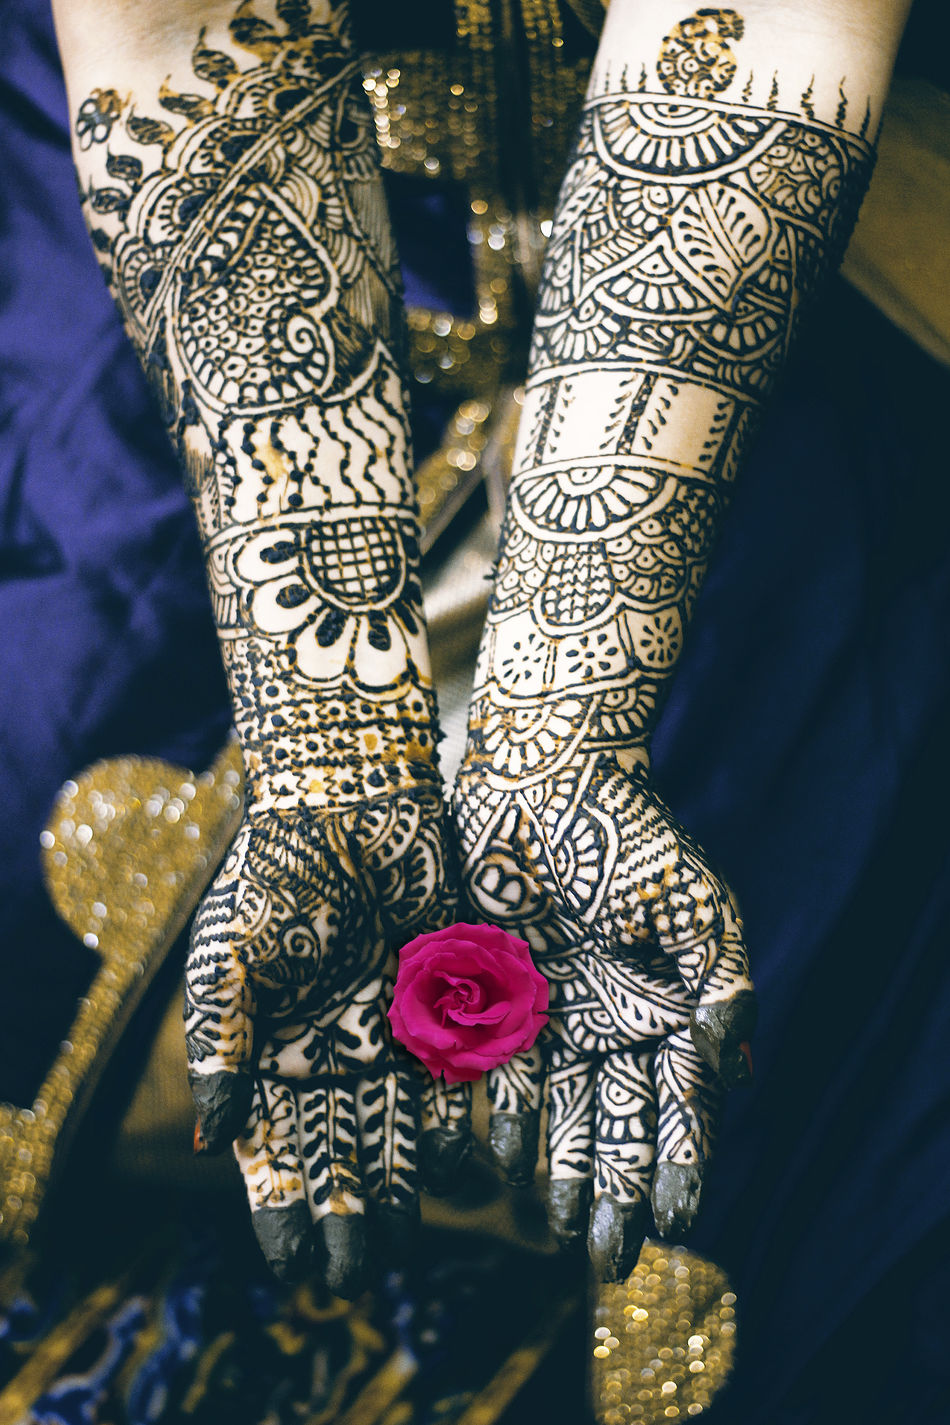 Indian culture Mehendi High Angle View Pattern Indoors  Close-up Celebration One Person Low Section One Woman Only People Day Hand Mehendi Mehendi Art Wedding Bride ArtWork Tatoo Lifestyles Luxury Design Human Hand Human Body Part Assam, India Traditional Culture Culture